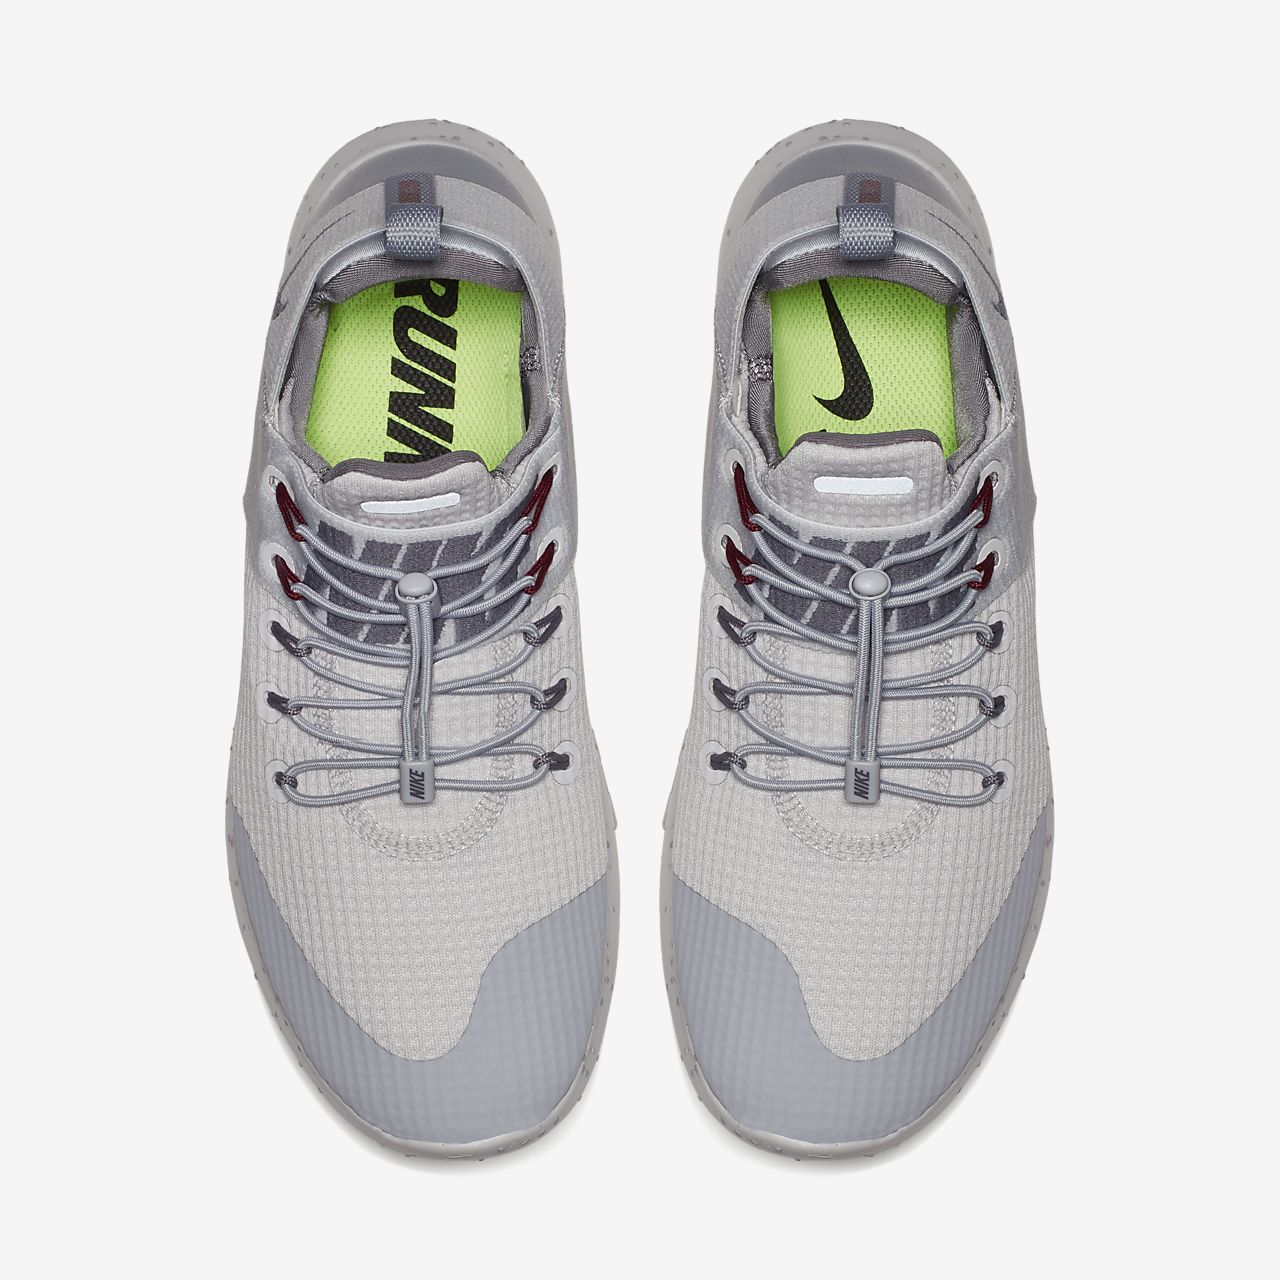 Nike Free 3.0 V2 Men Shoes Green Grey &XCDjX